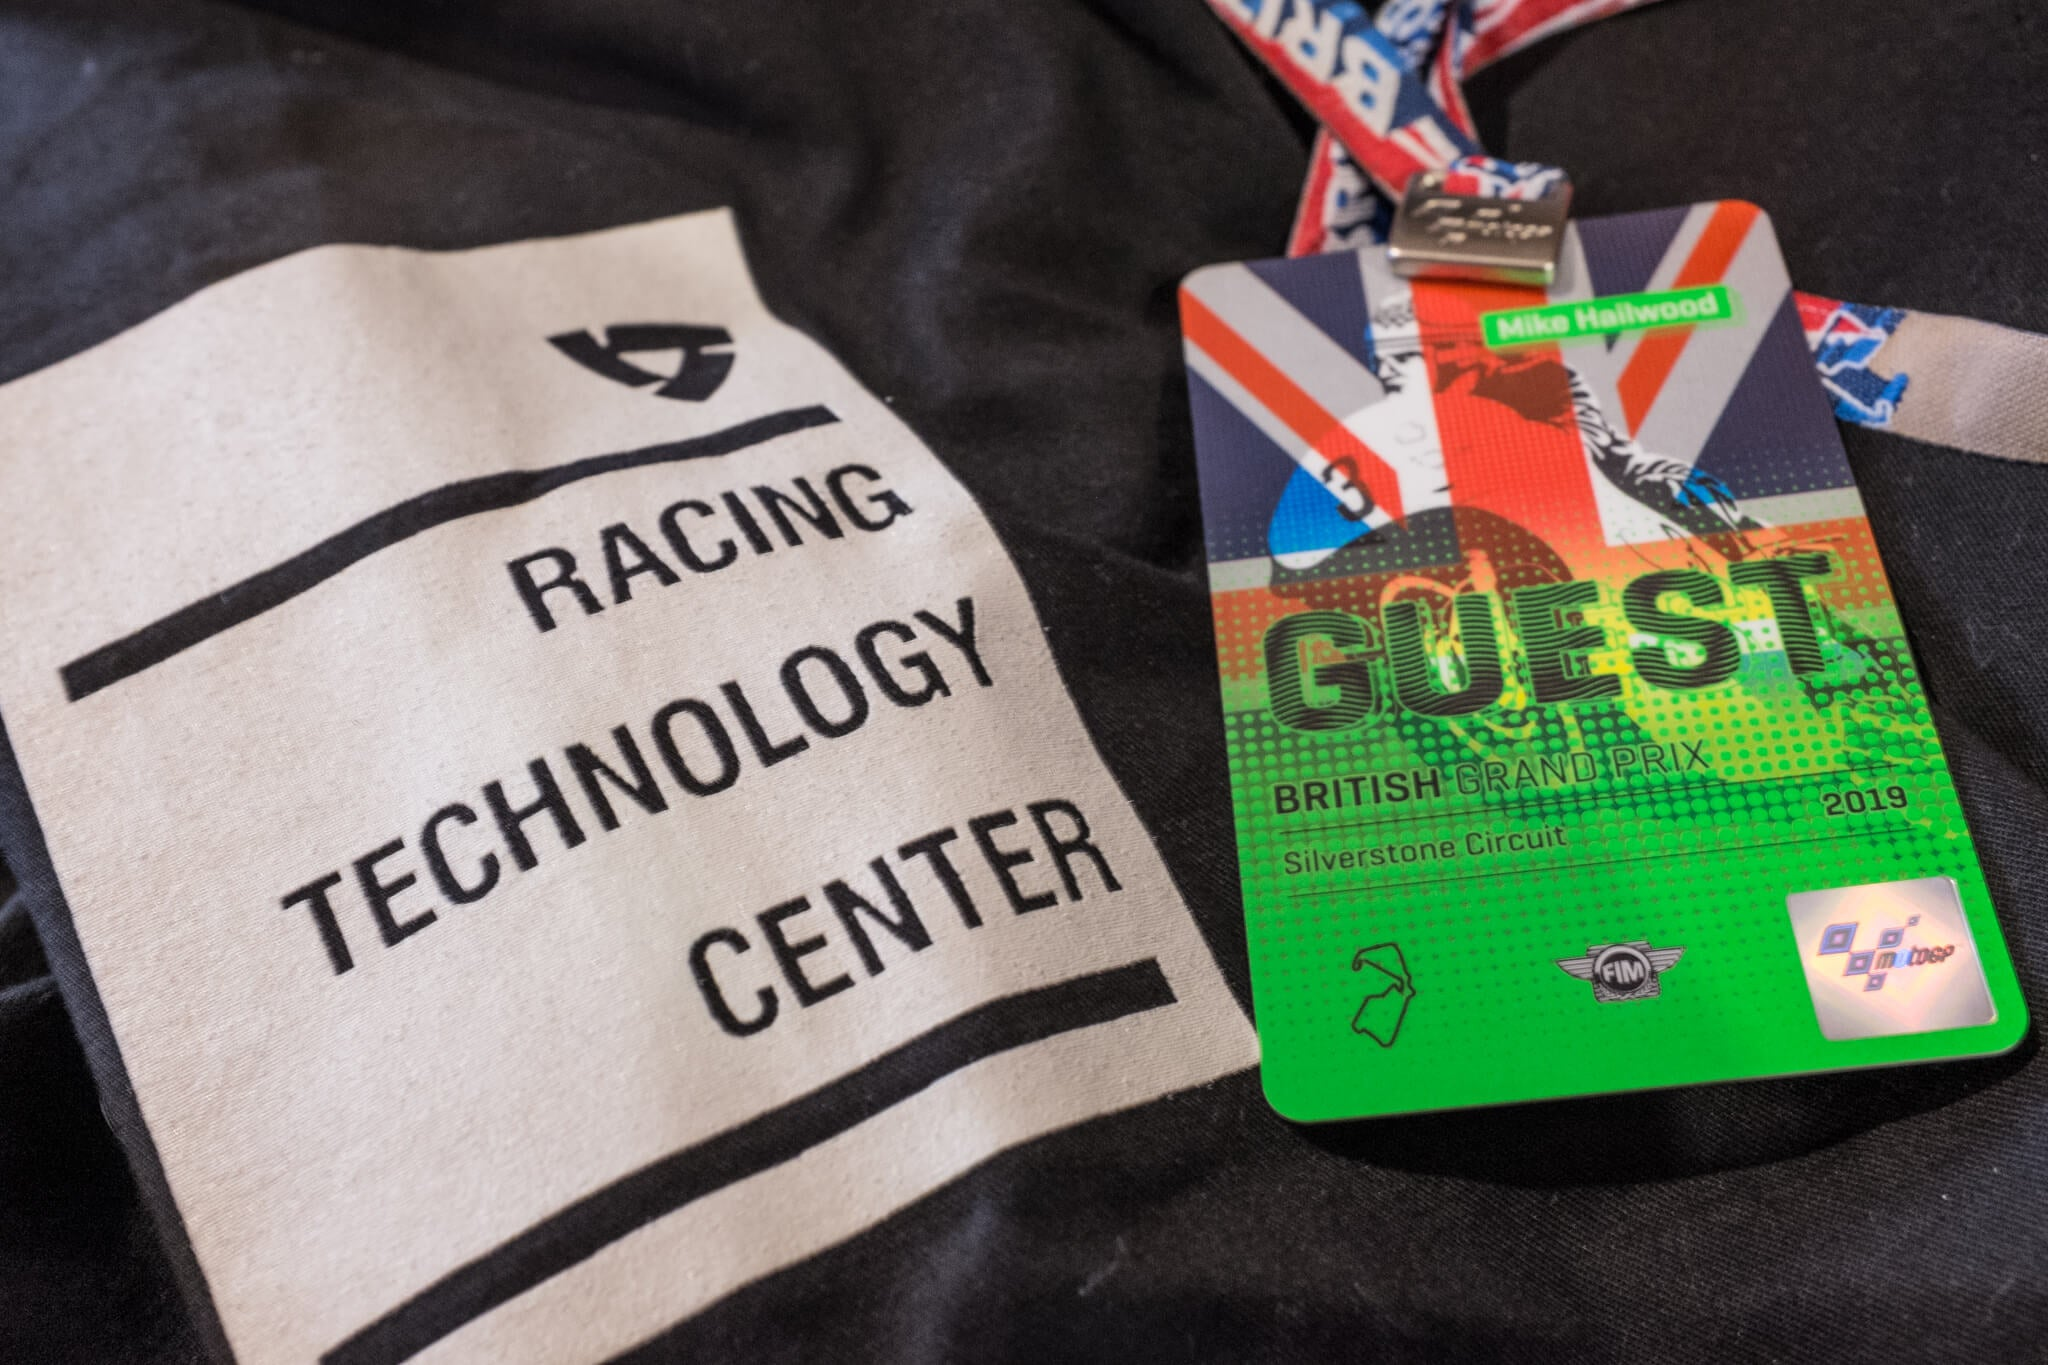 My pass for the whole weekend Paddock MotoGP Silverstone 2019